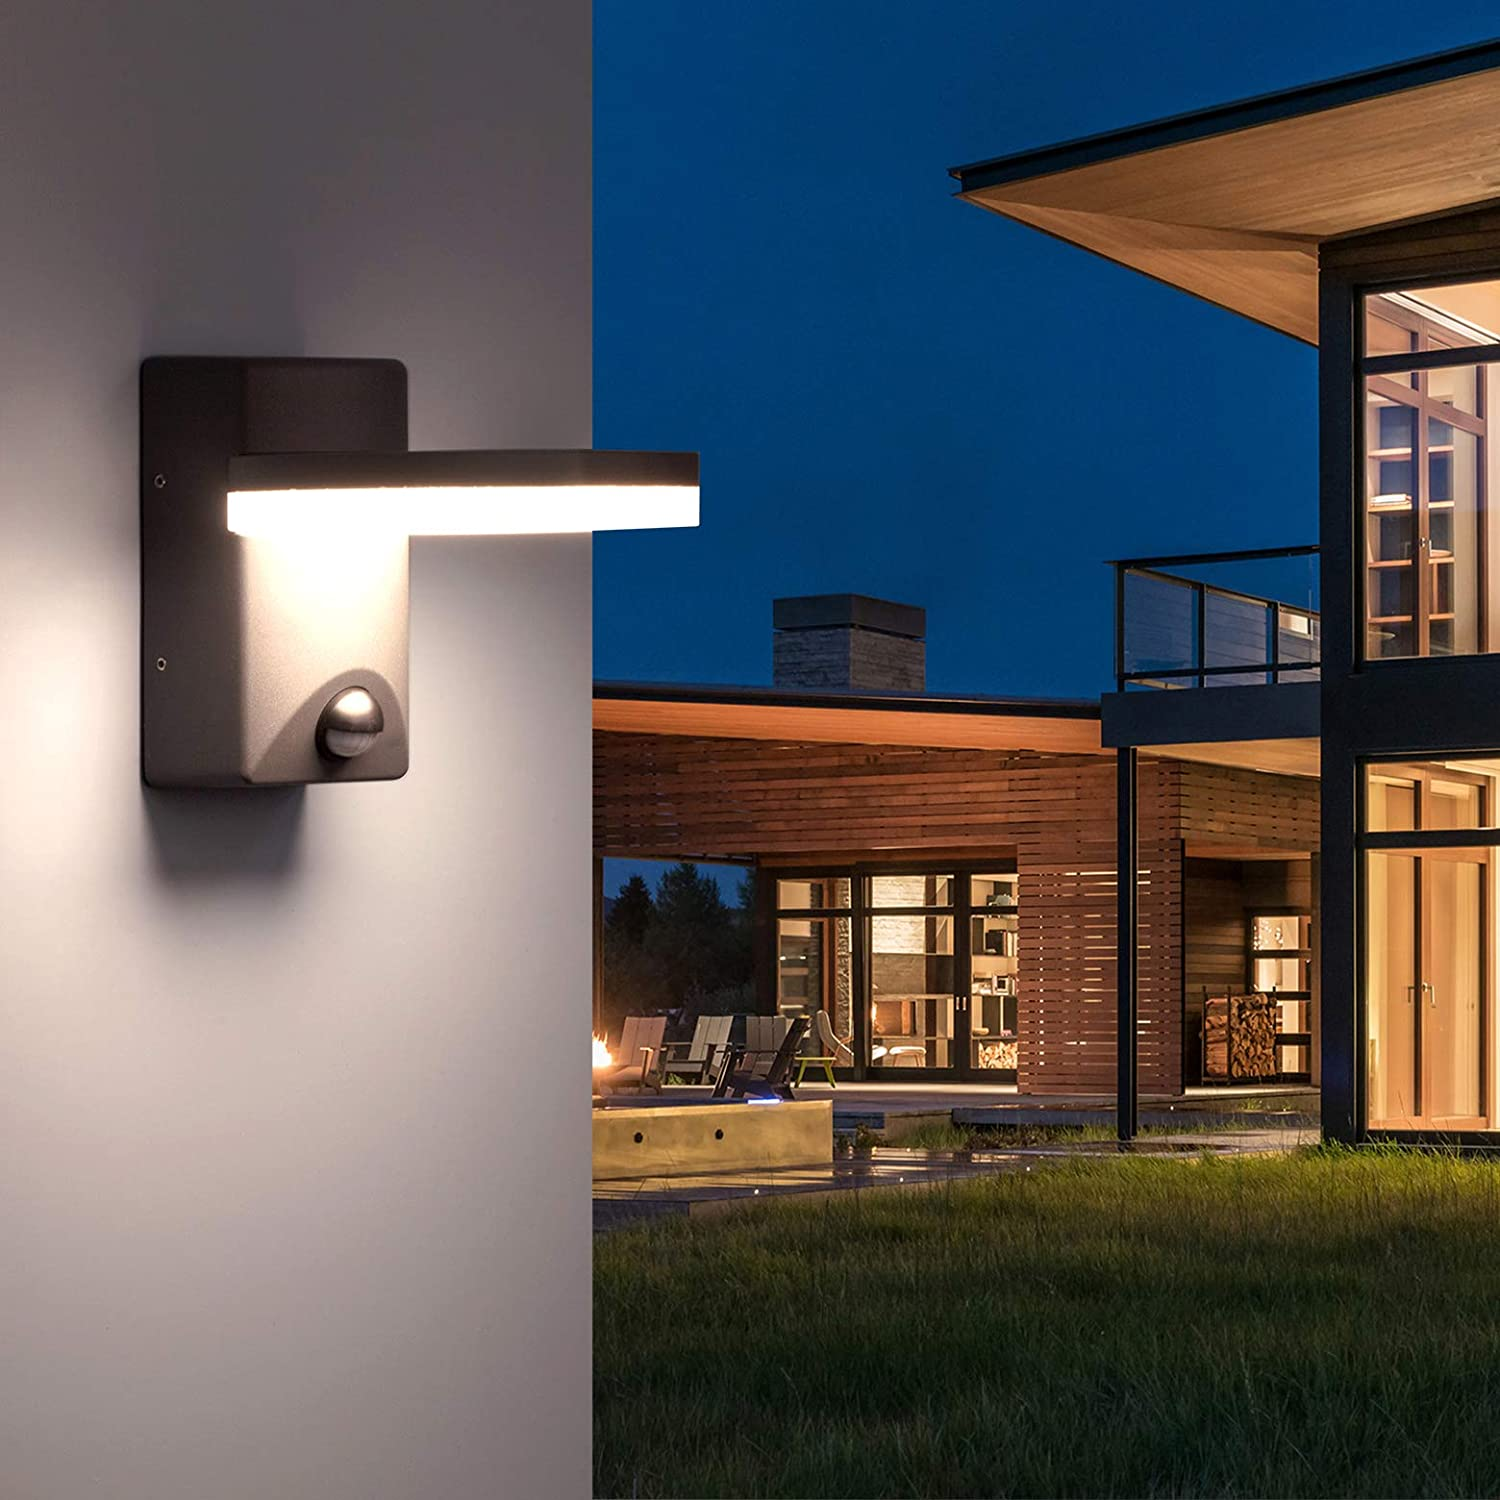 LIGHTMAN Outdoor LED Wall Light with Motion Sensor Outside Wall Lighting Mains Powered PIR Aluminium Body External Weatherproof lampshade lamp for House 800LM 12W 4000K IP44